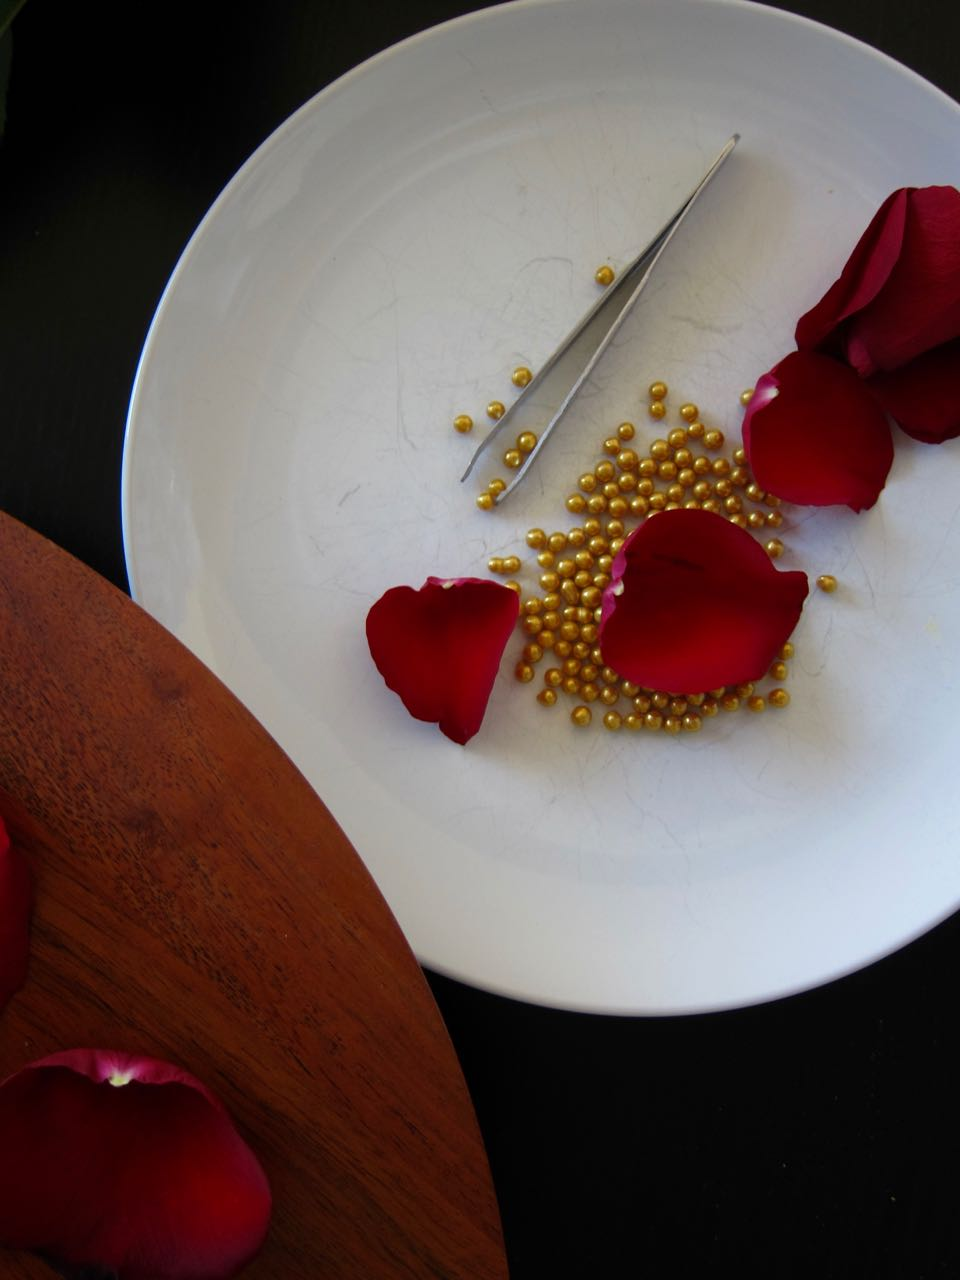 Petals and gold sprinkles